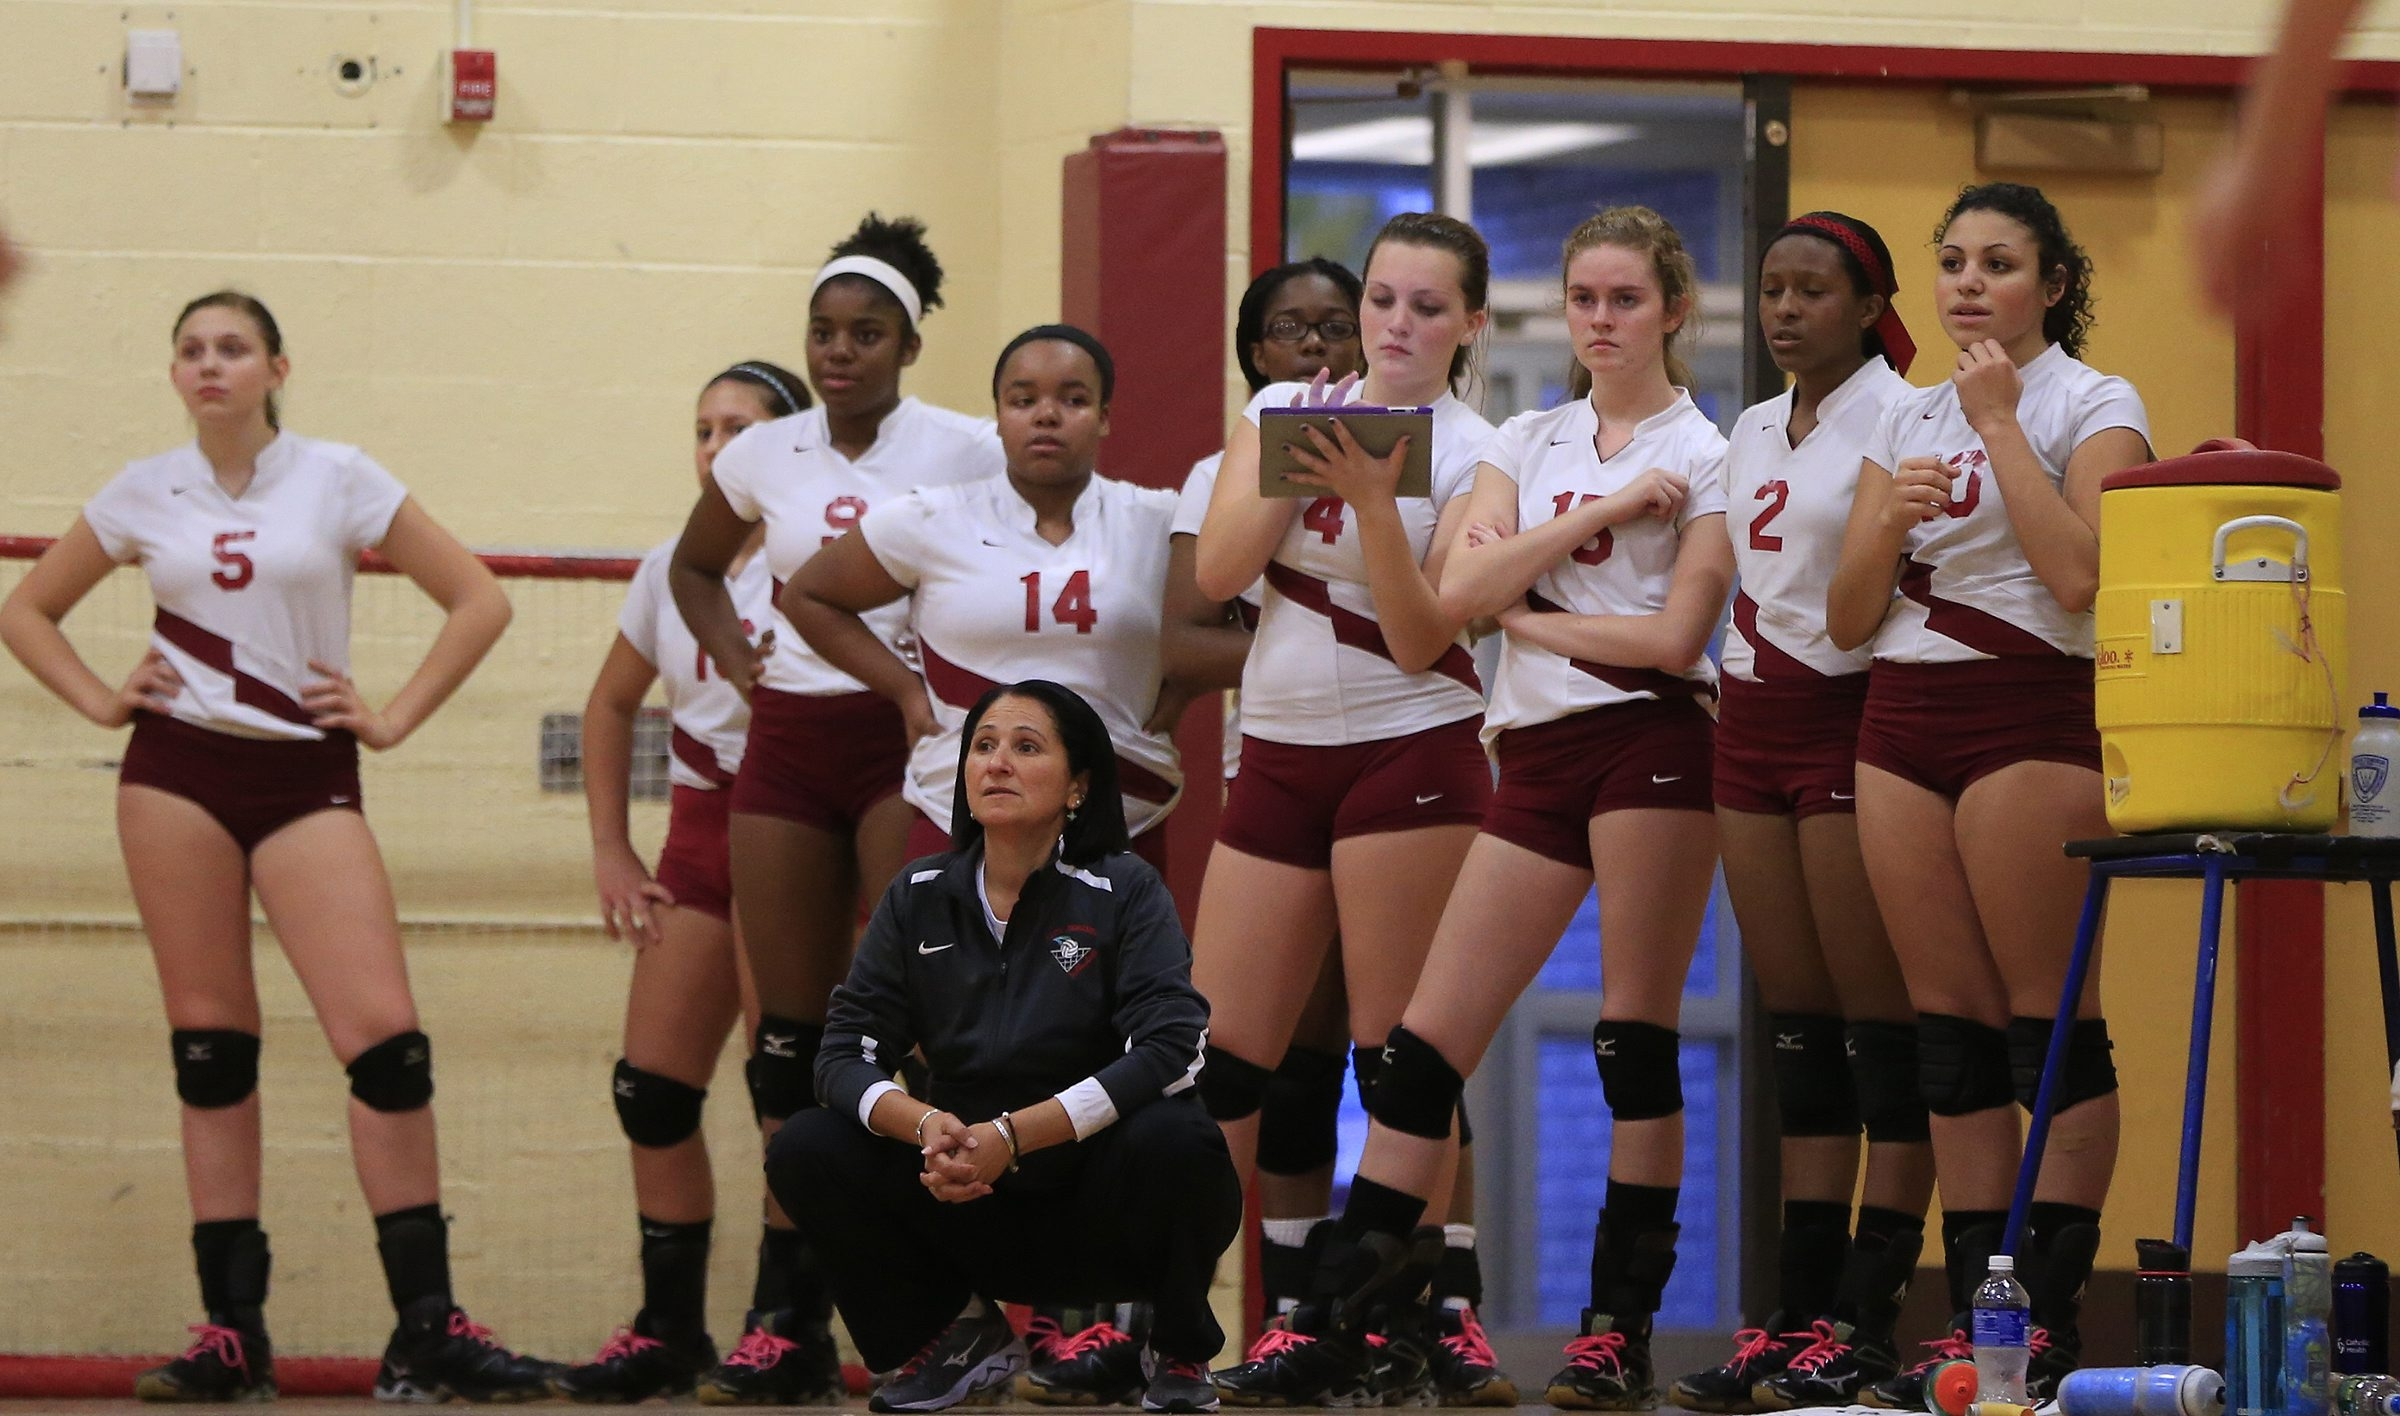 The City Honors volleyball teams coached by Deborah Matos regularly contend for Section VI championships. Matos is also the school's softball coach.